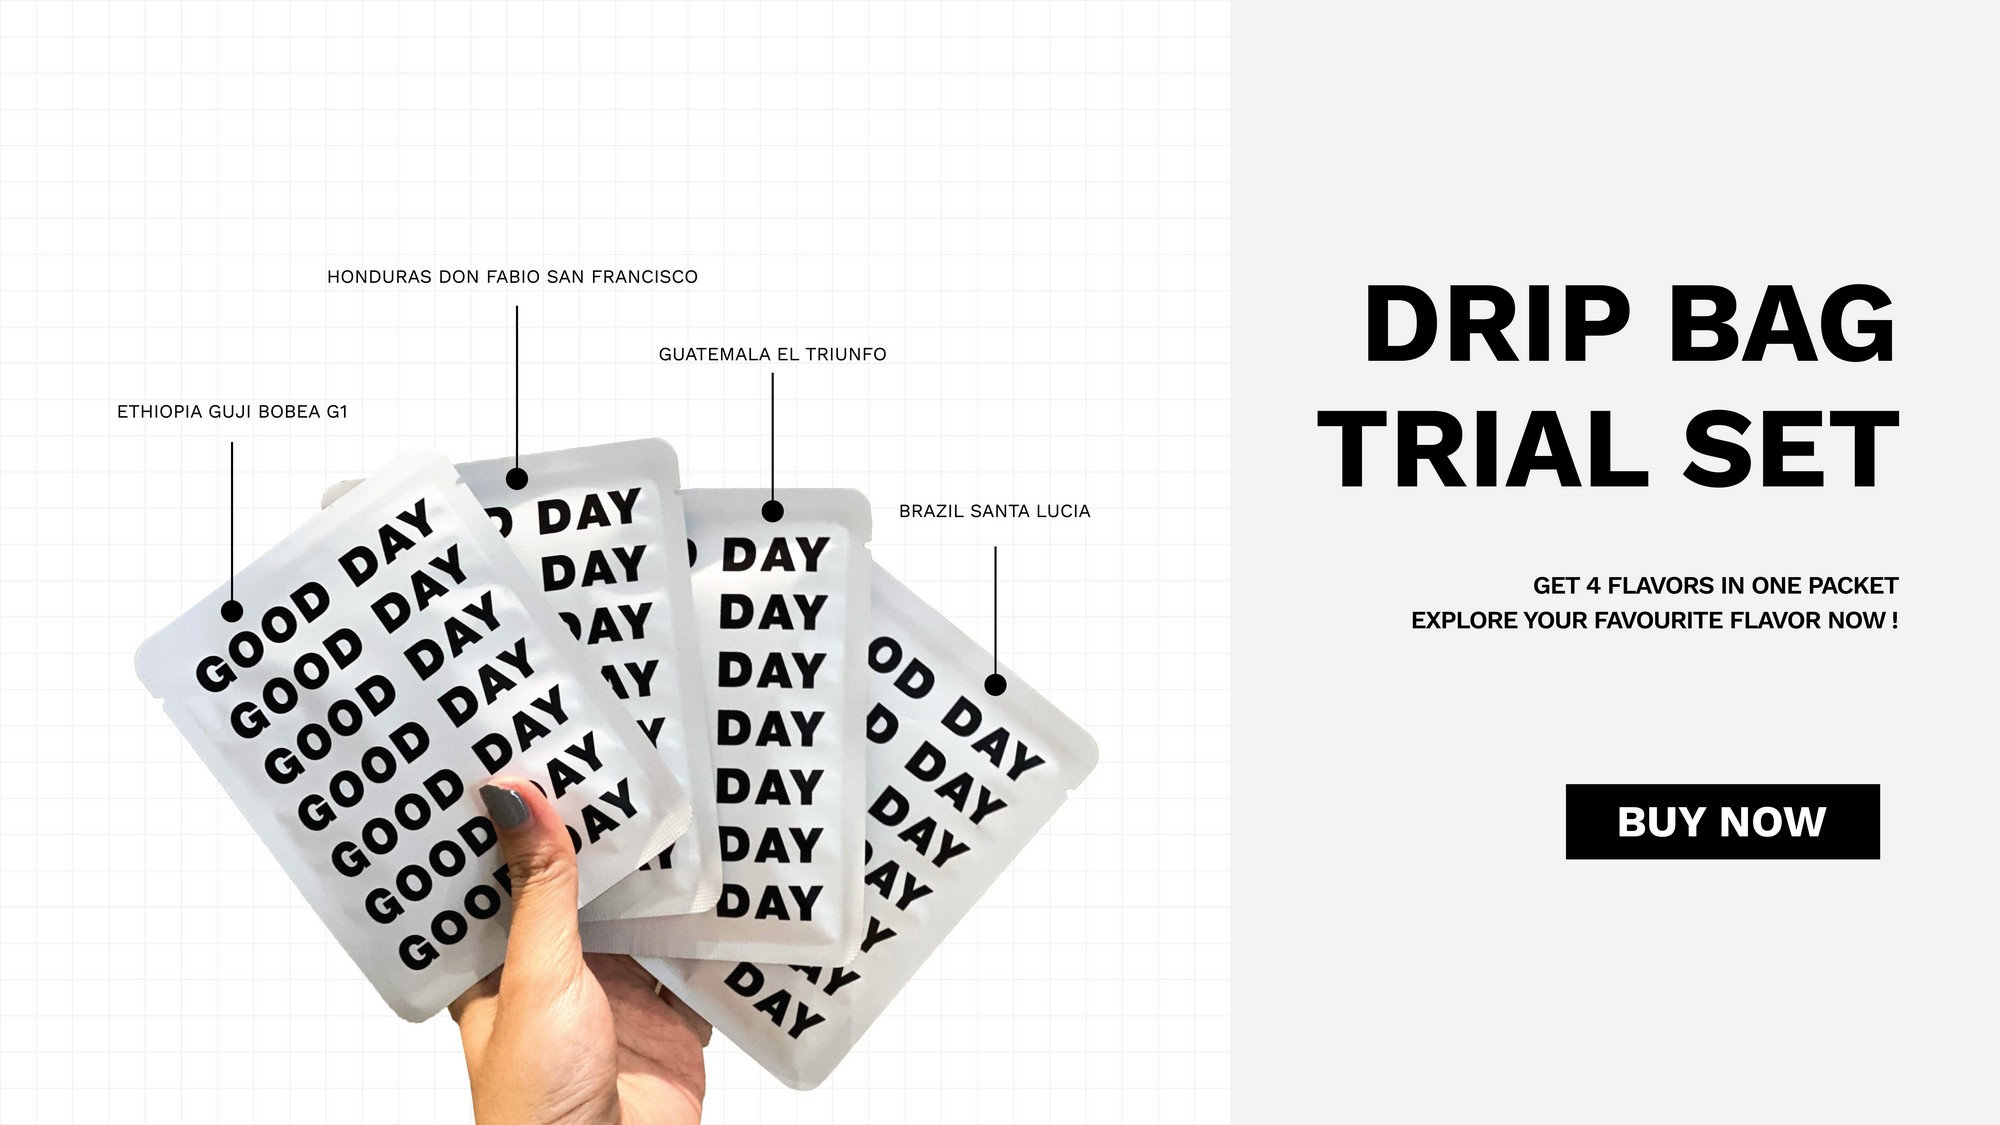 Drip bag trial set